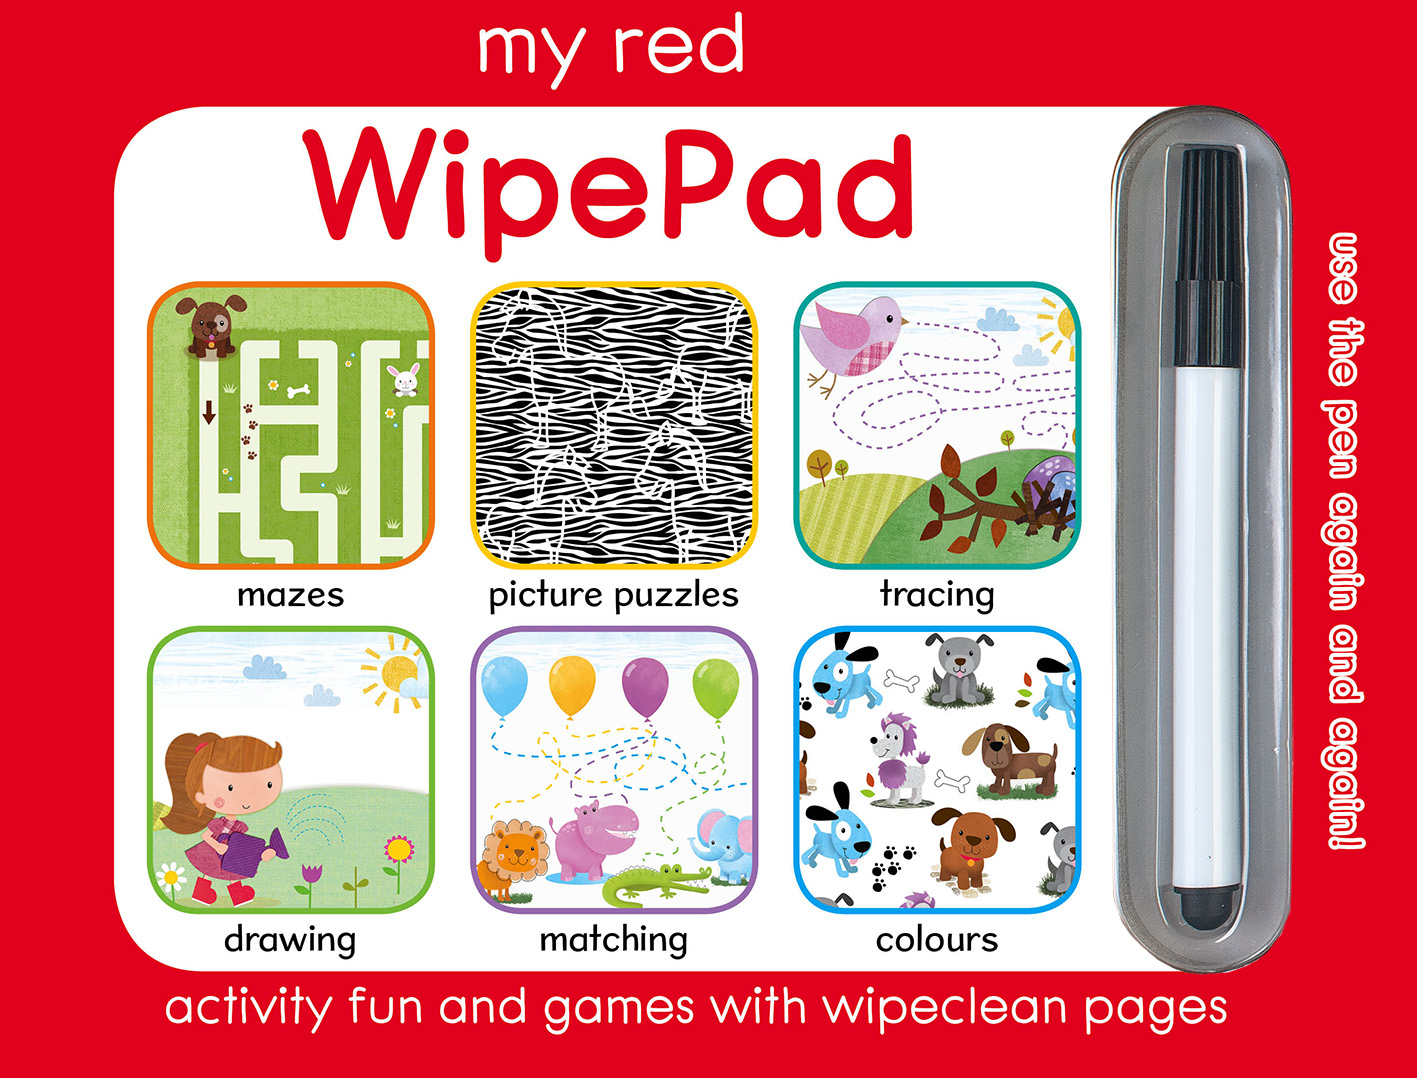 My Red WipePad